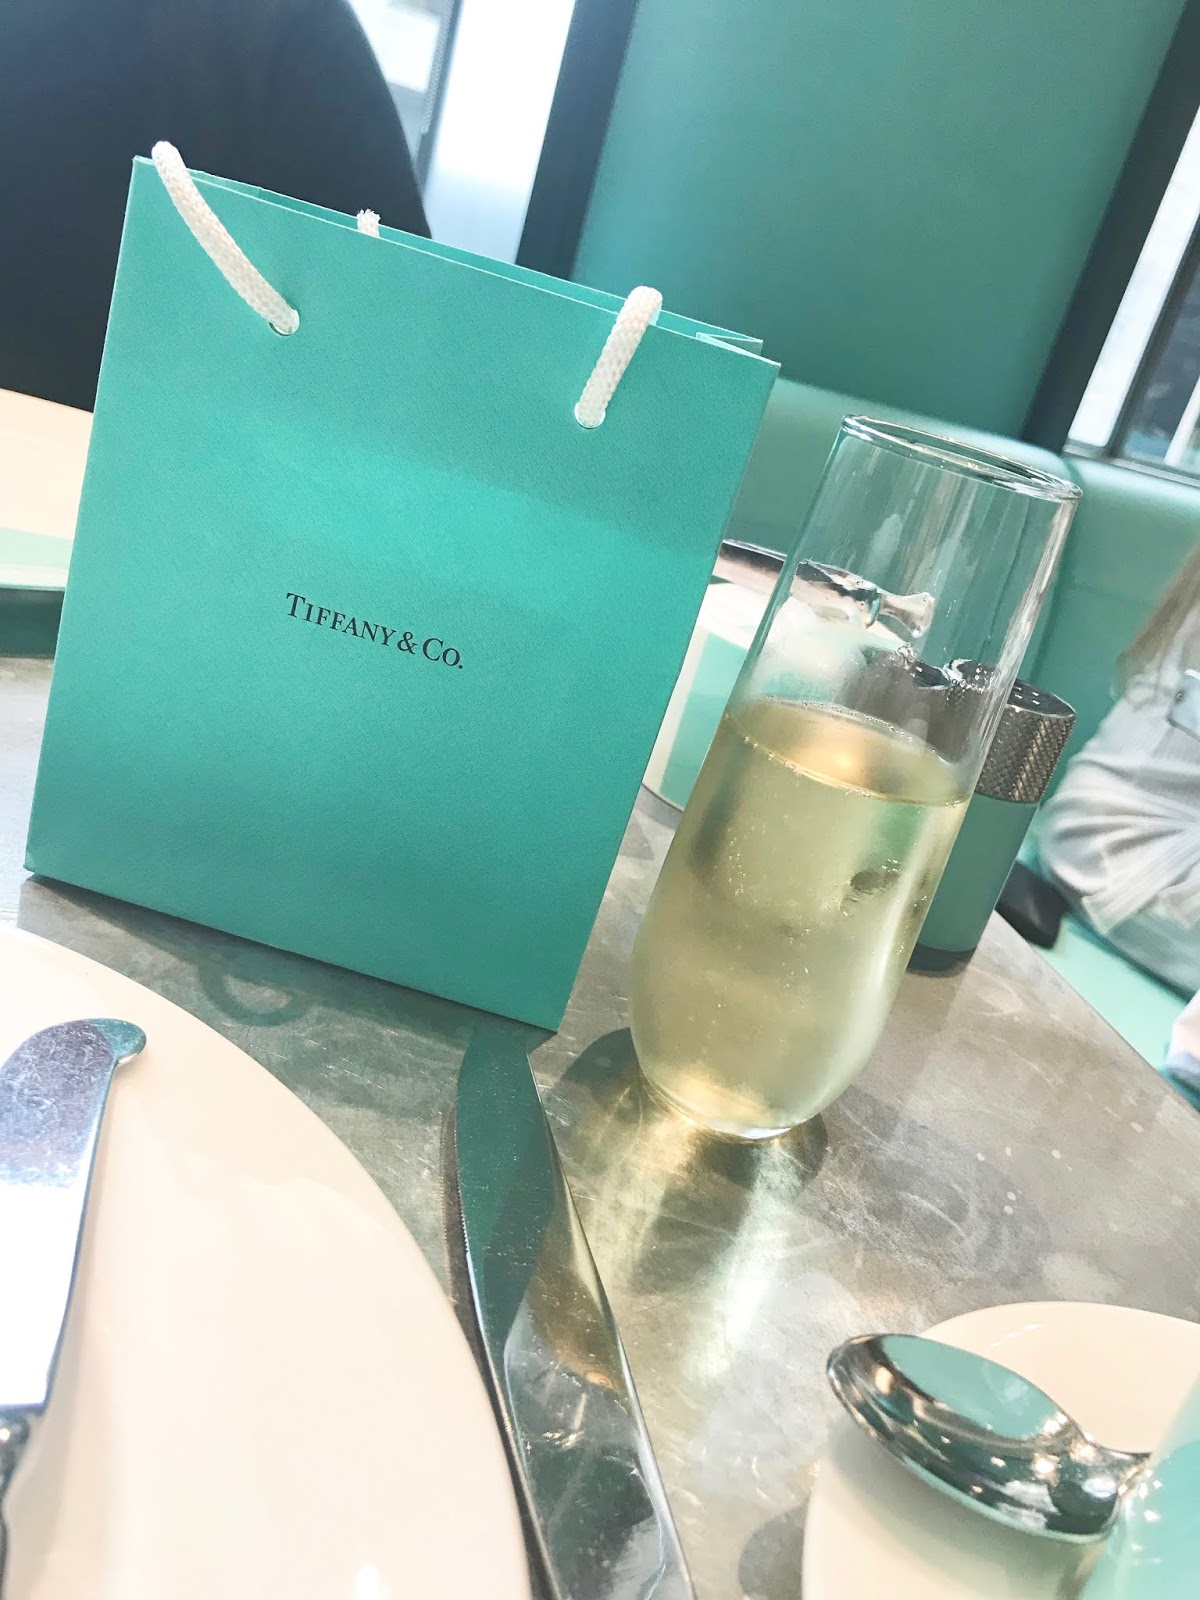 Tiffany's shopping bag \ necklace \ champagne